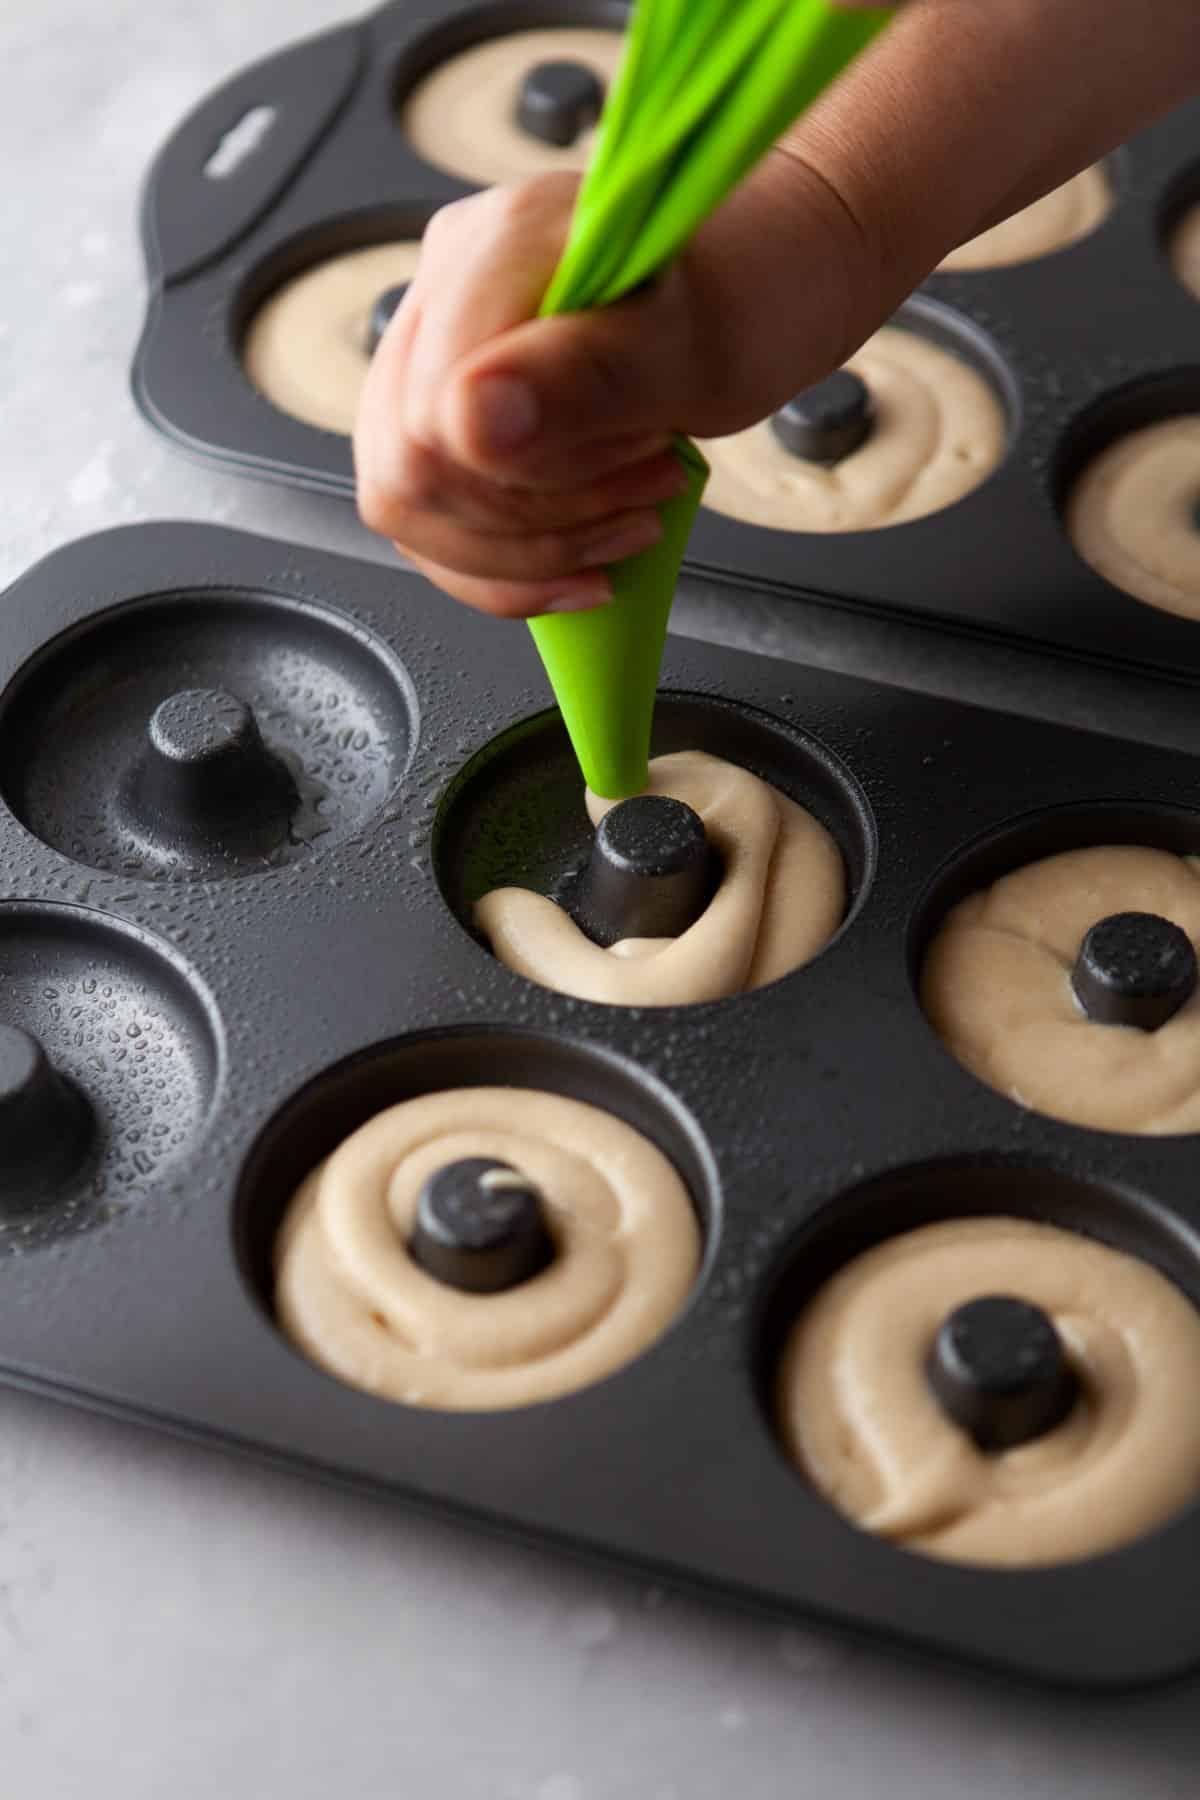 Piping batter into a donut pan